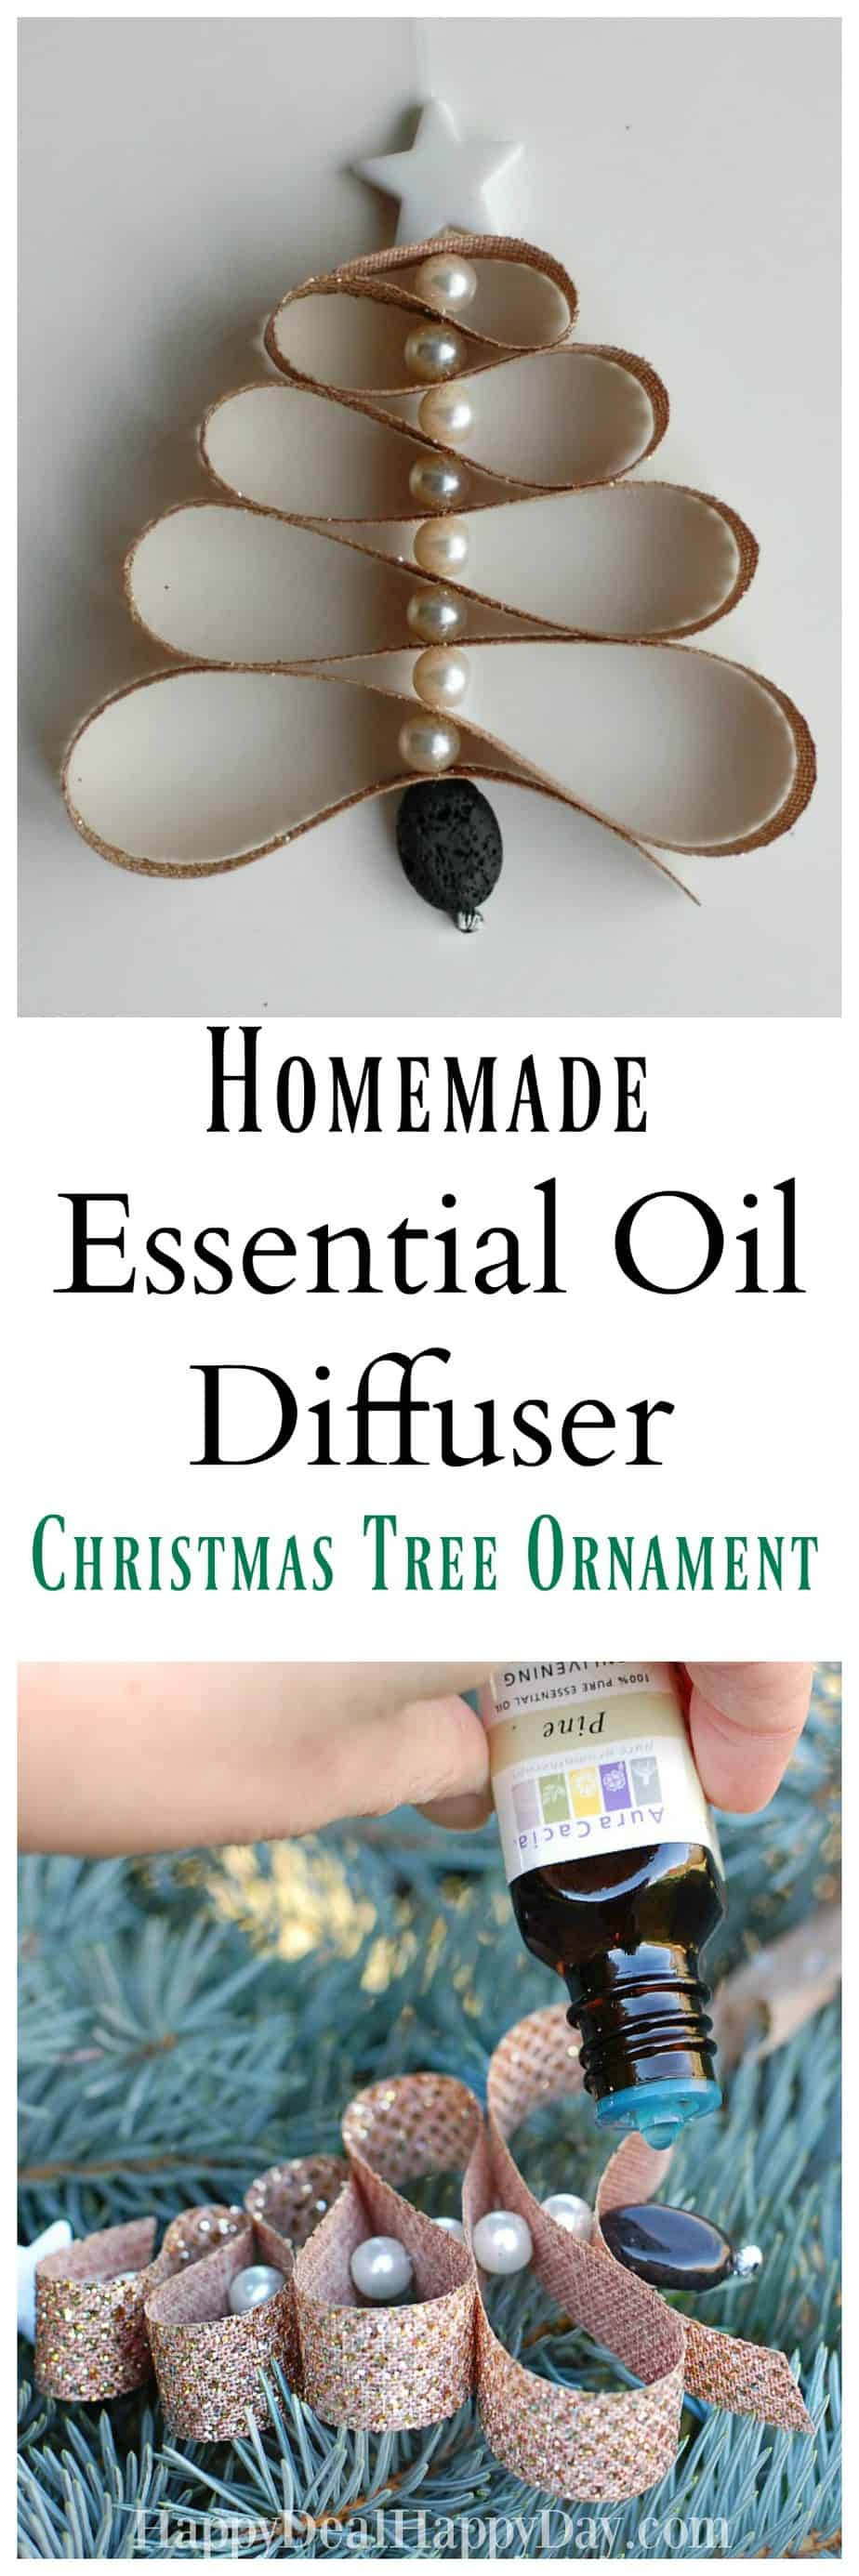 Homemade Essential Oil Diffuser Christmas Tree Ornament | Happy Deal - Happy Day!